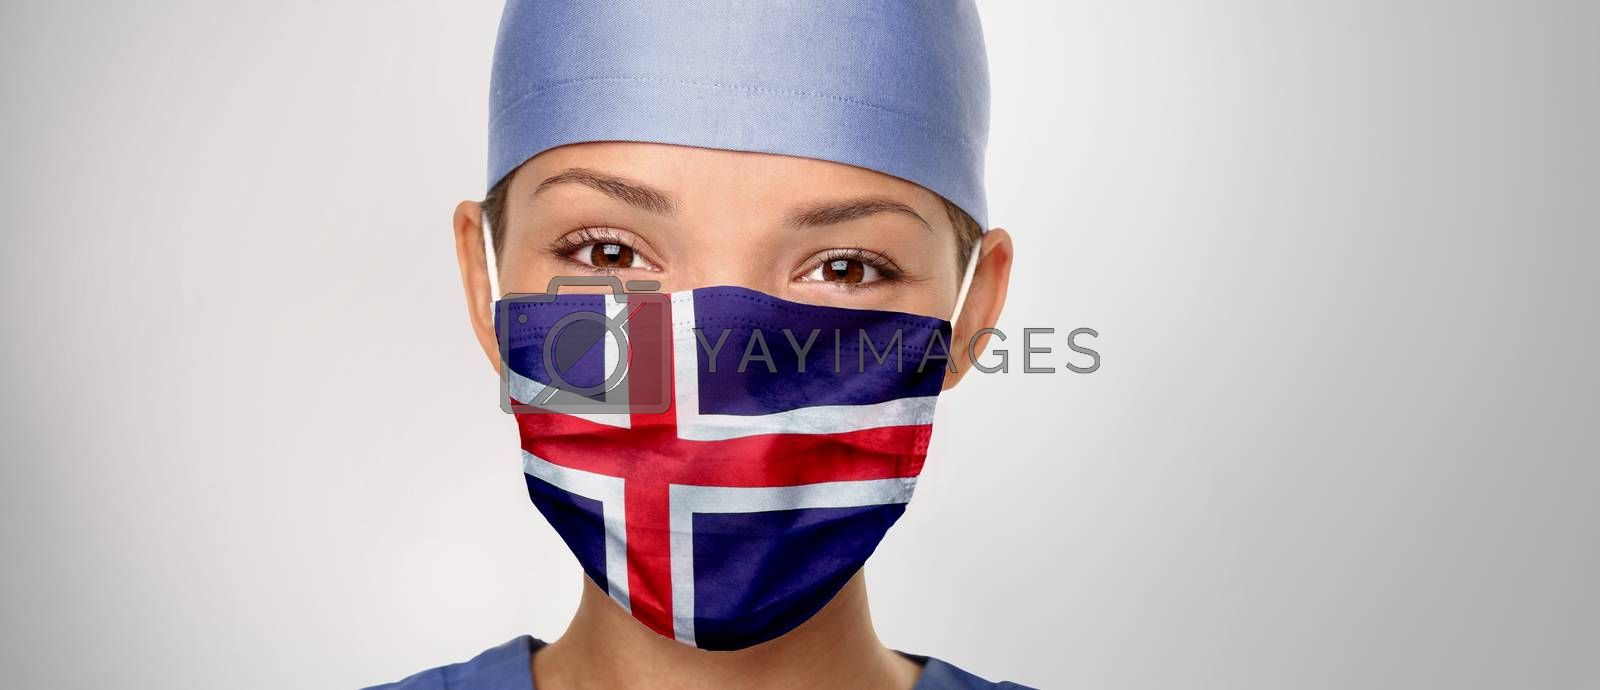 Icelandic flag Iceland COVID-19 panoramic banner Corona virus outbreak pandemic doctor woman wearing PPE protective face mask for coronavirus prevention. Asian nurse happy. Health care worker helping by Maridav